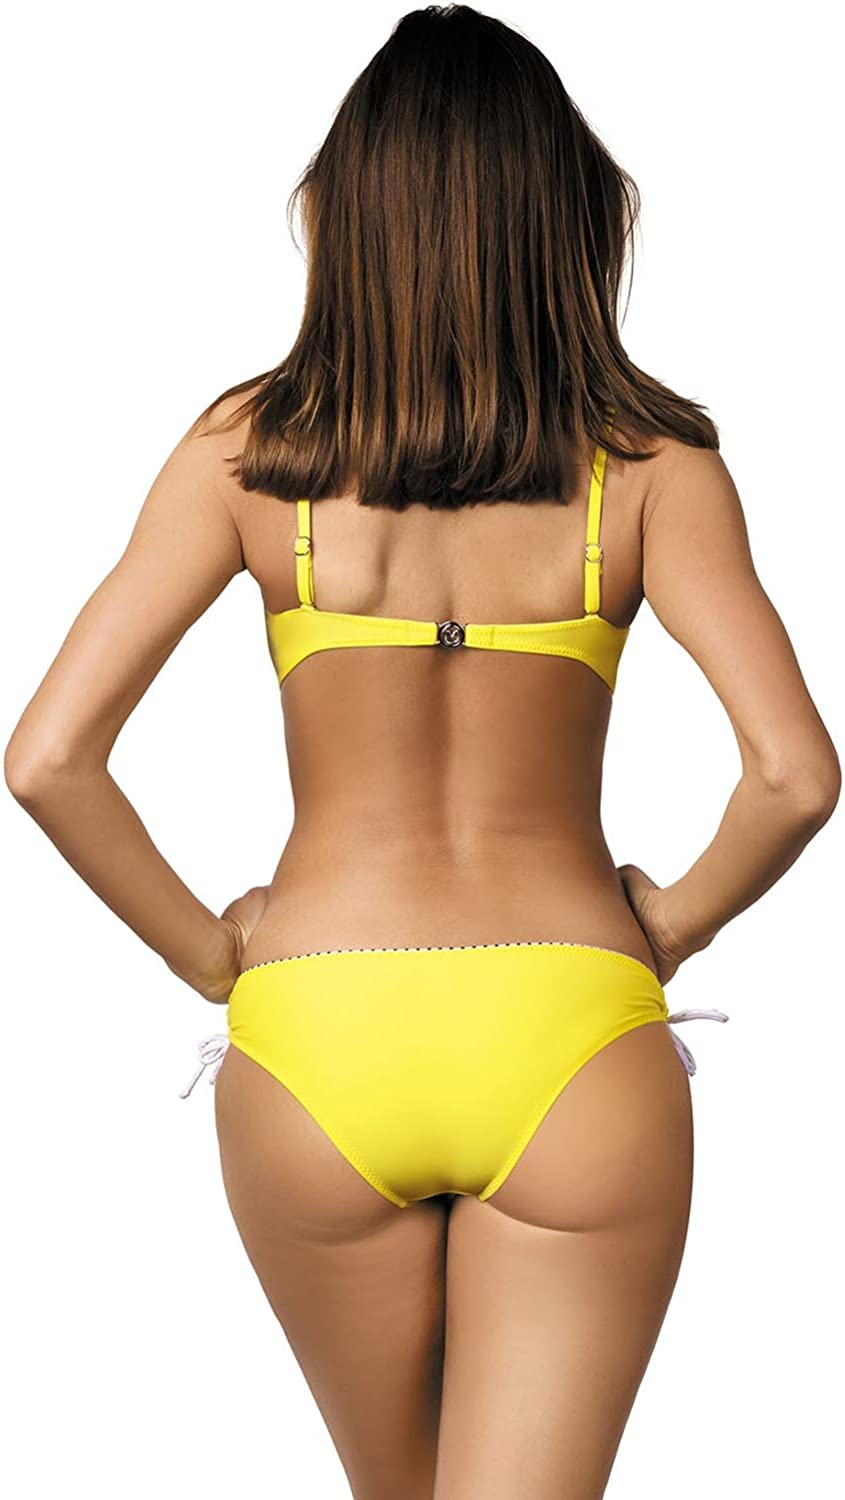 Marko Tracy M-392 women/'s bikini set underwired padded cups removable straps